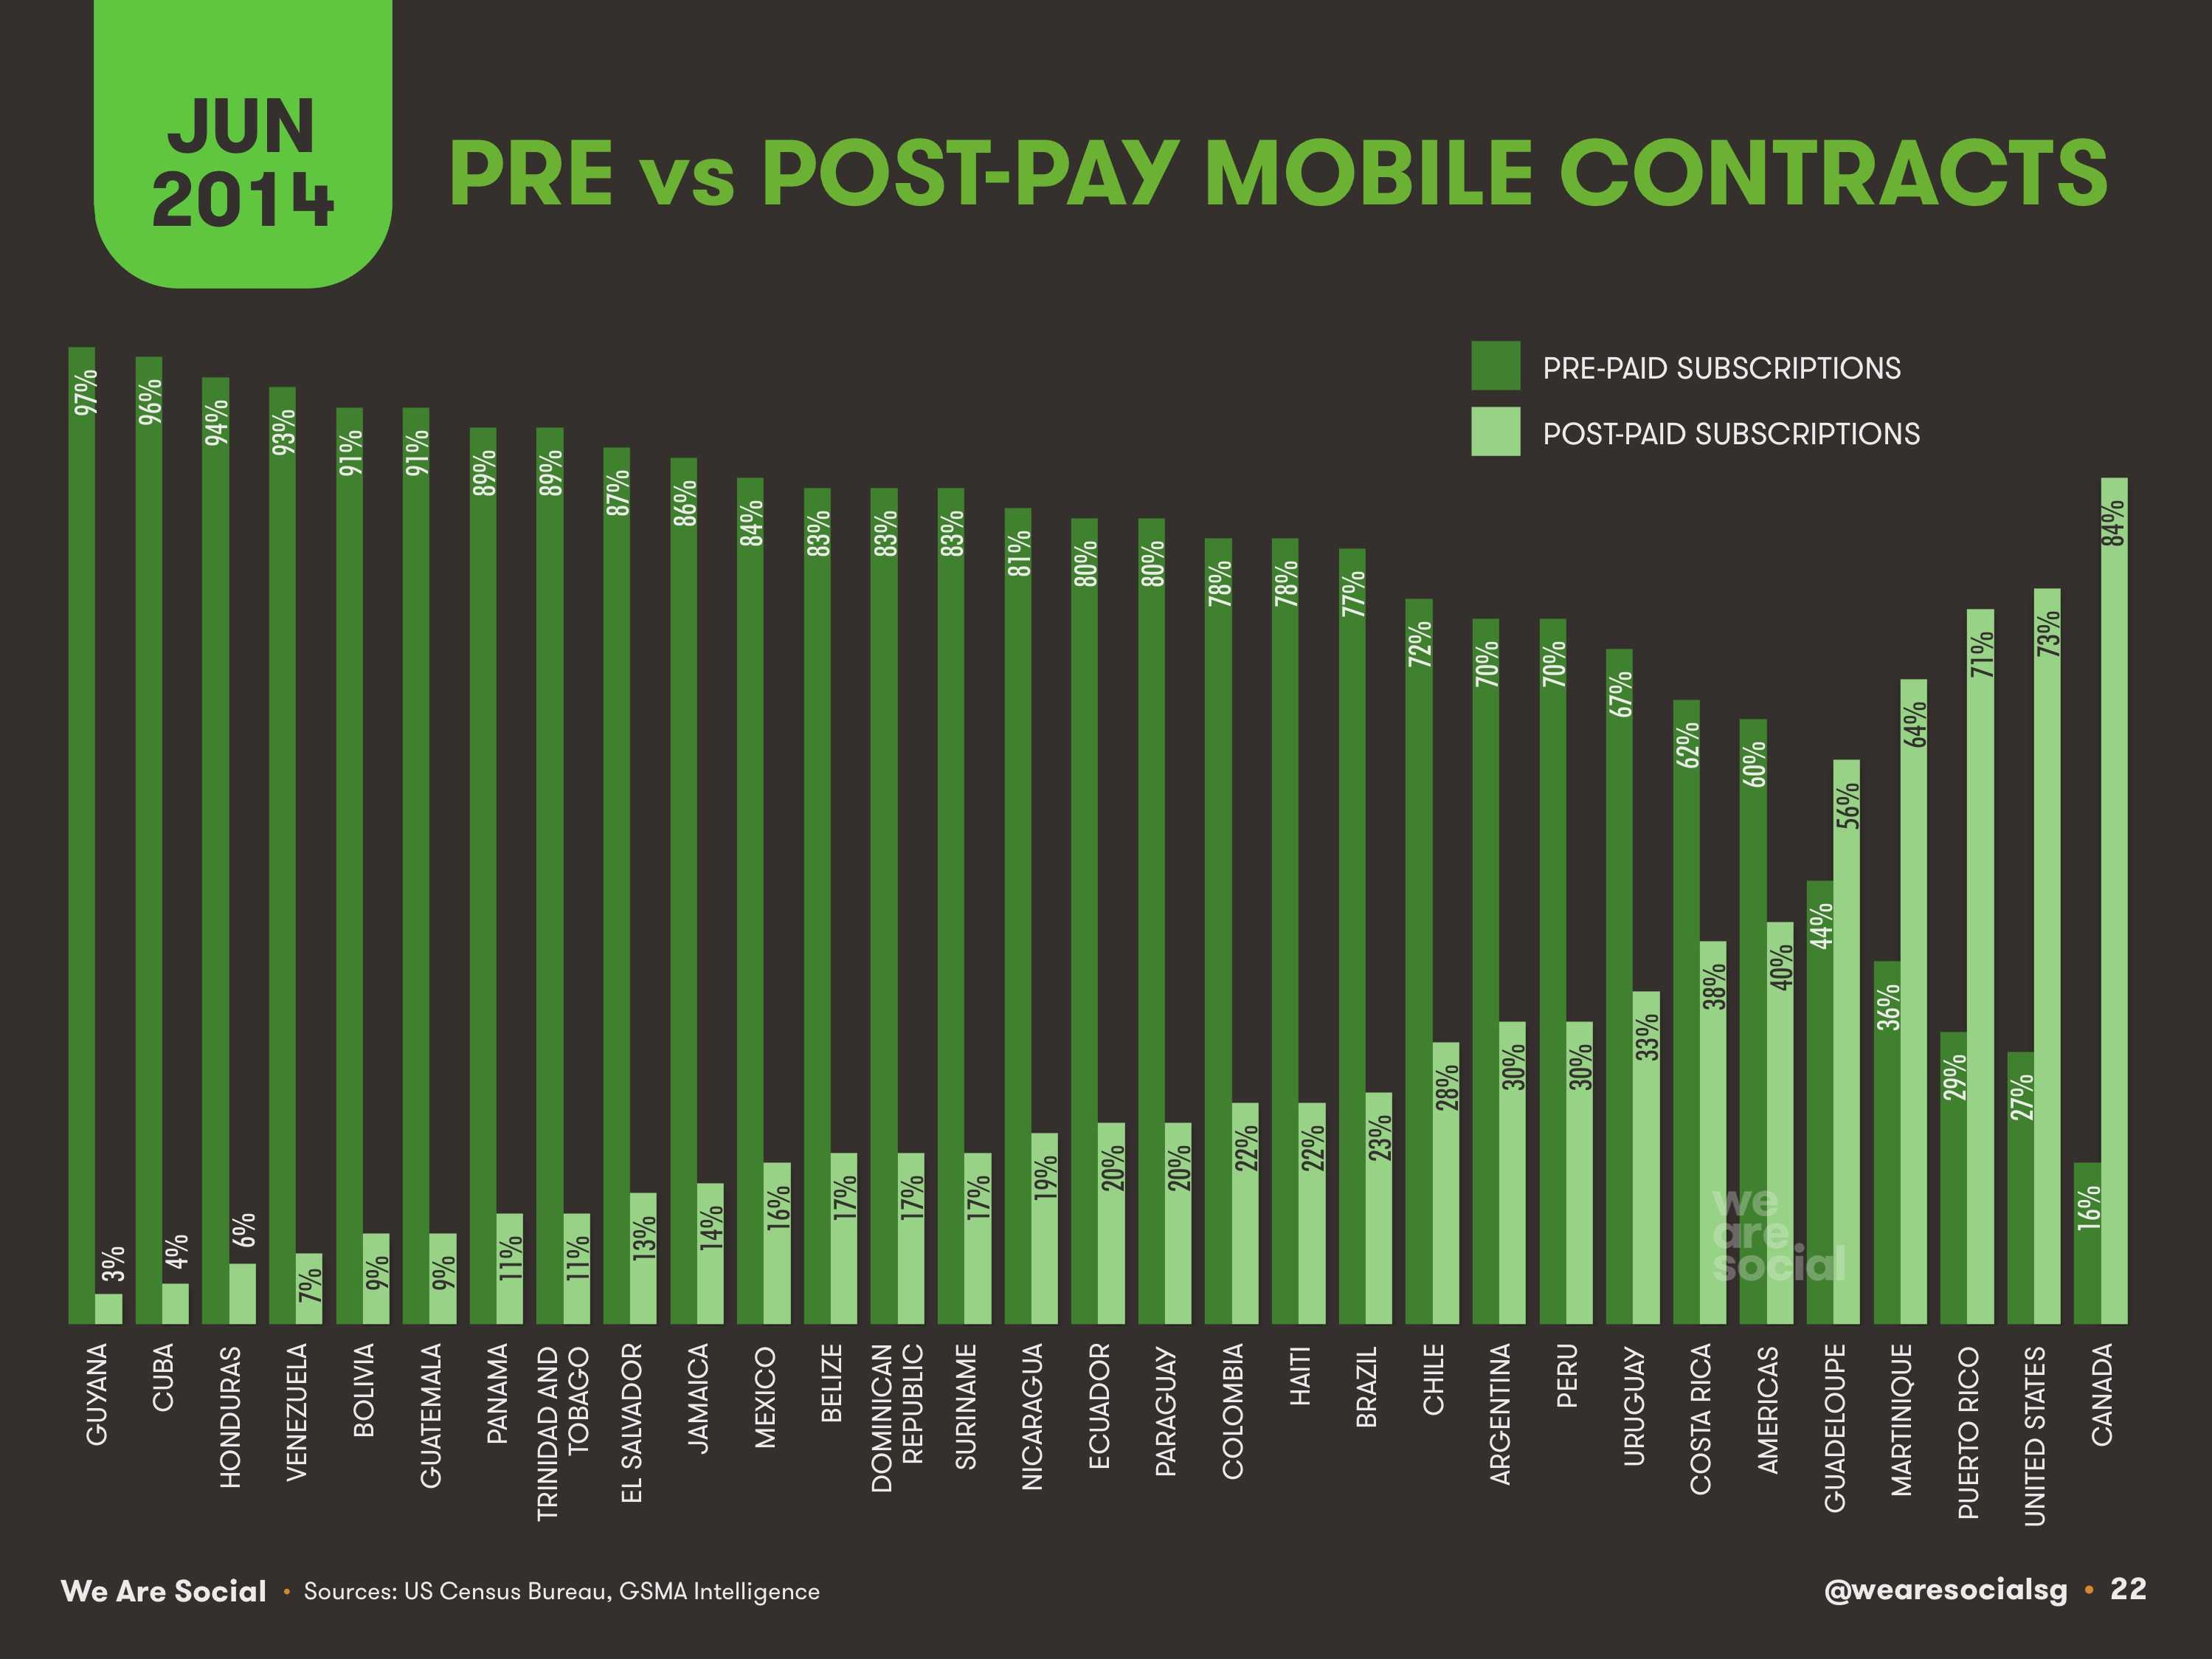 22-Pre-vs-Post-Pay-Mobile-Contracts-Americas-2014-We-Are-Social-1